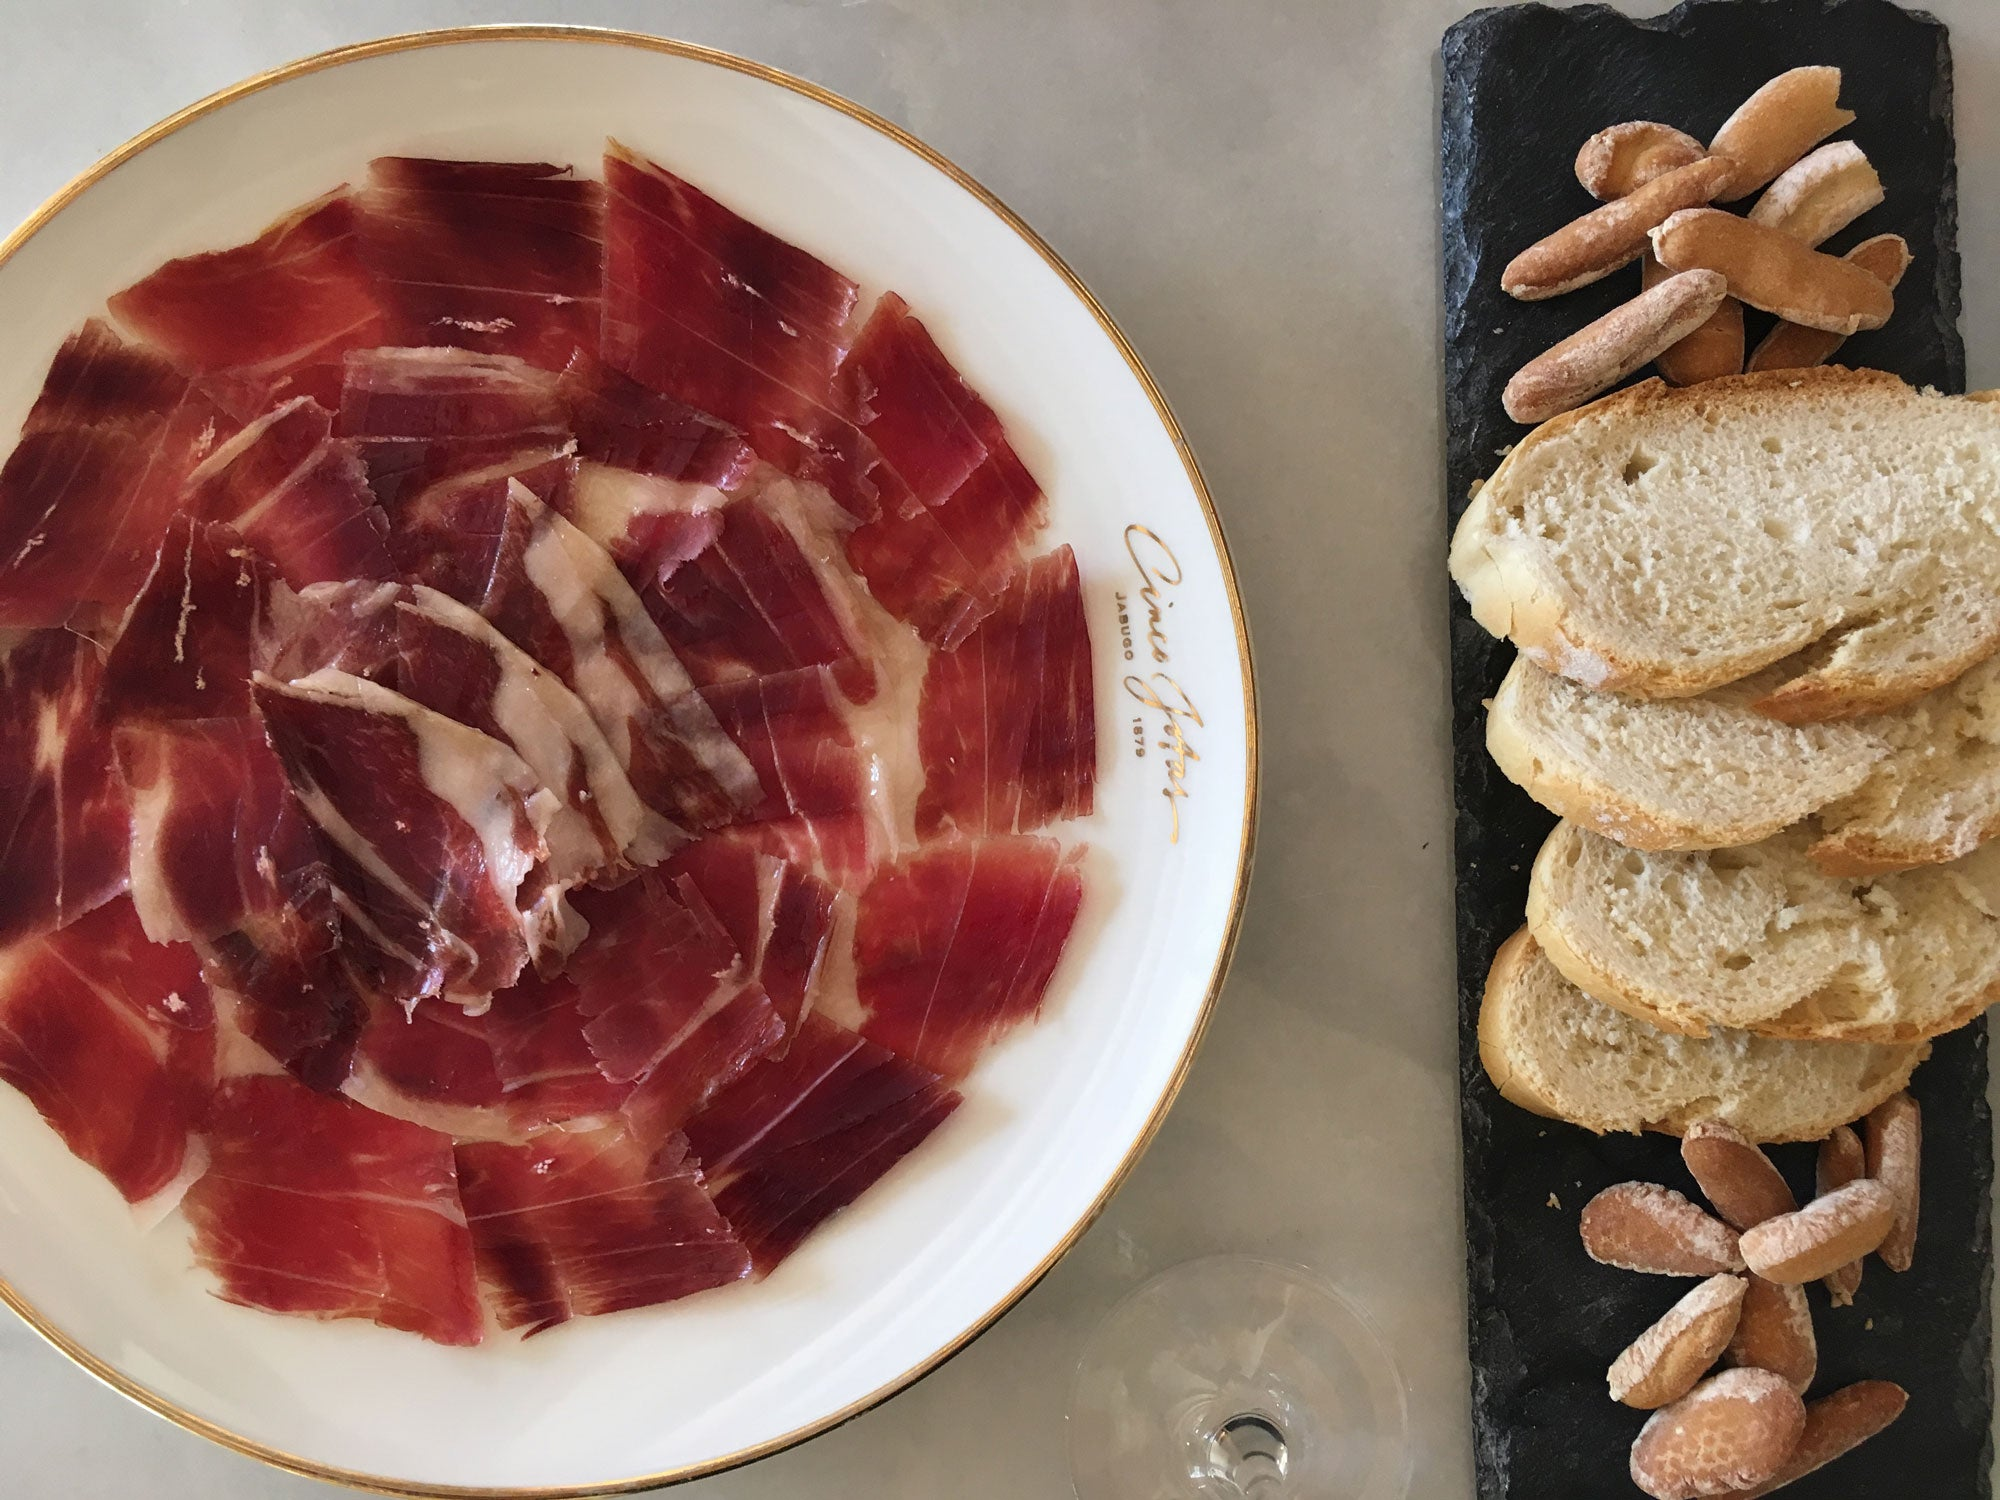 Travel Through These 15 Cities to Eat the Best Tapas in Spain